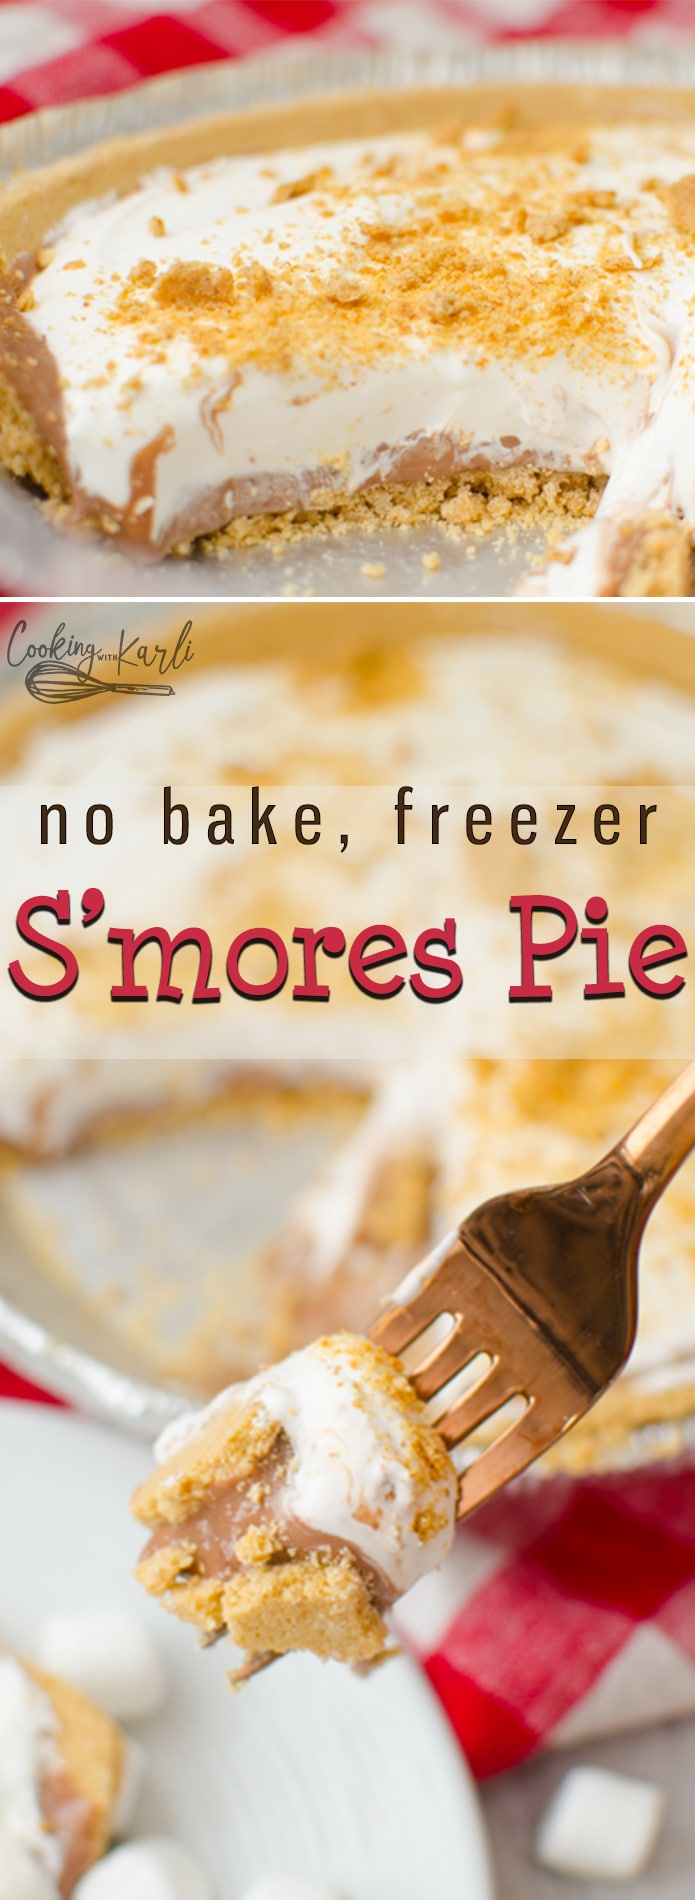 S'mores Pie is a no bake, frozen pie that can be thrown together in under 10 minutes! All of the classic s'mores flavors are not only present, but the ratio of graham cracker to marshmallow to chocolate is practicallyperfect. | Cooking with Karli | #smores #summer #dessert #nobake #freezer #pie #chocolate #marshmallow